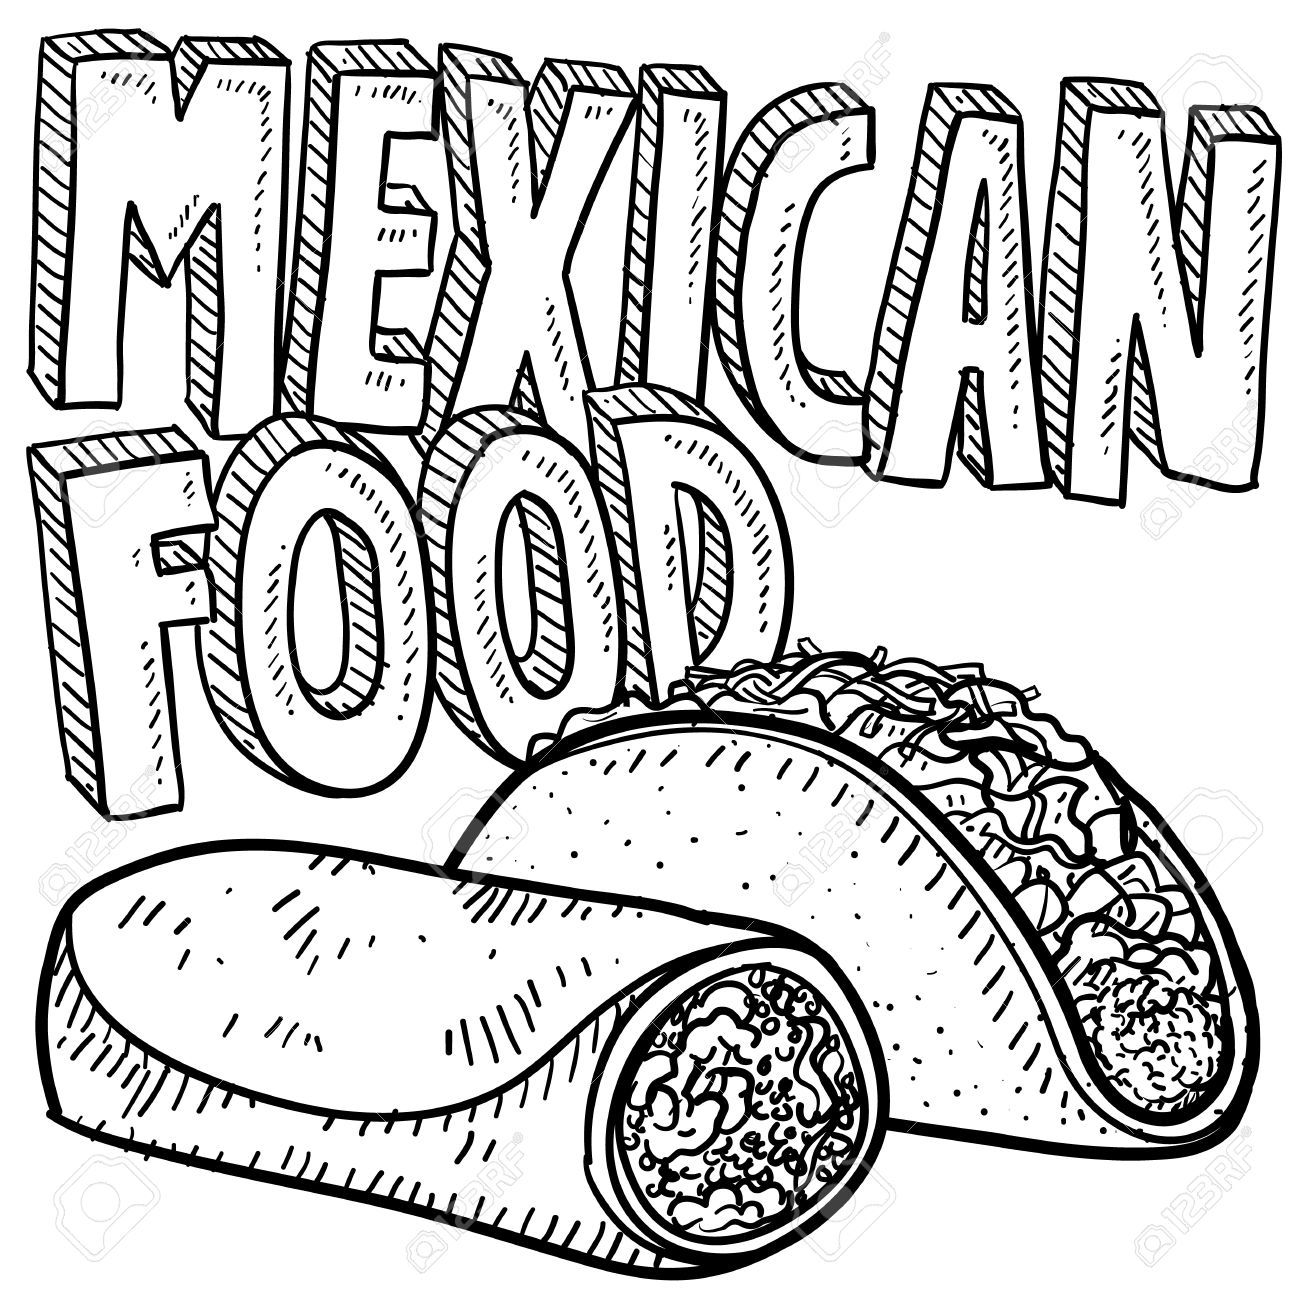 Burrito Stock Illustrations Cliparts And Royalty Free